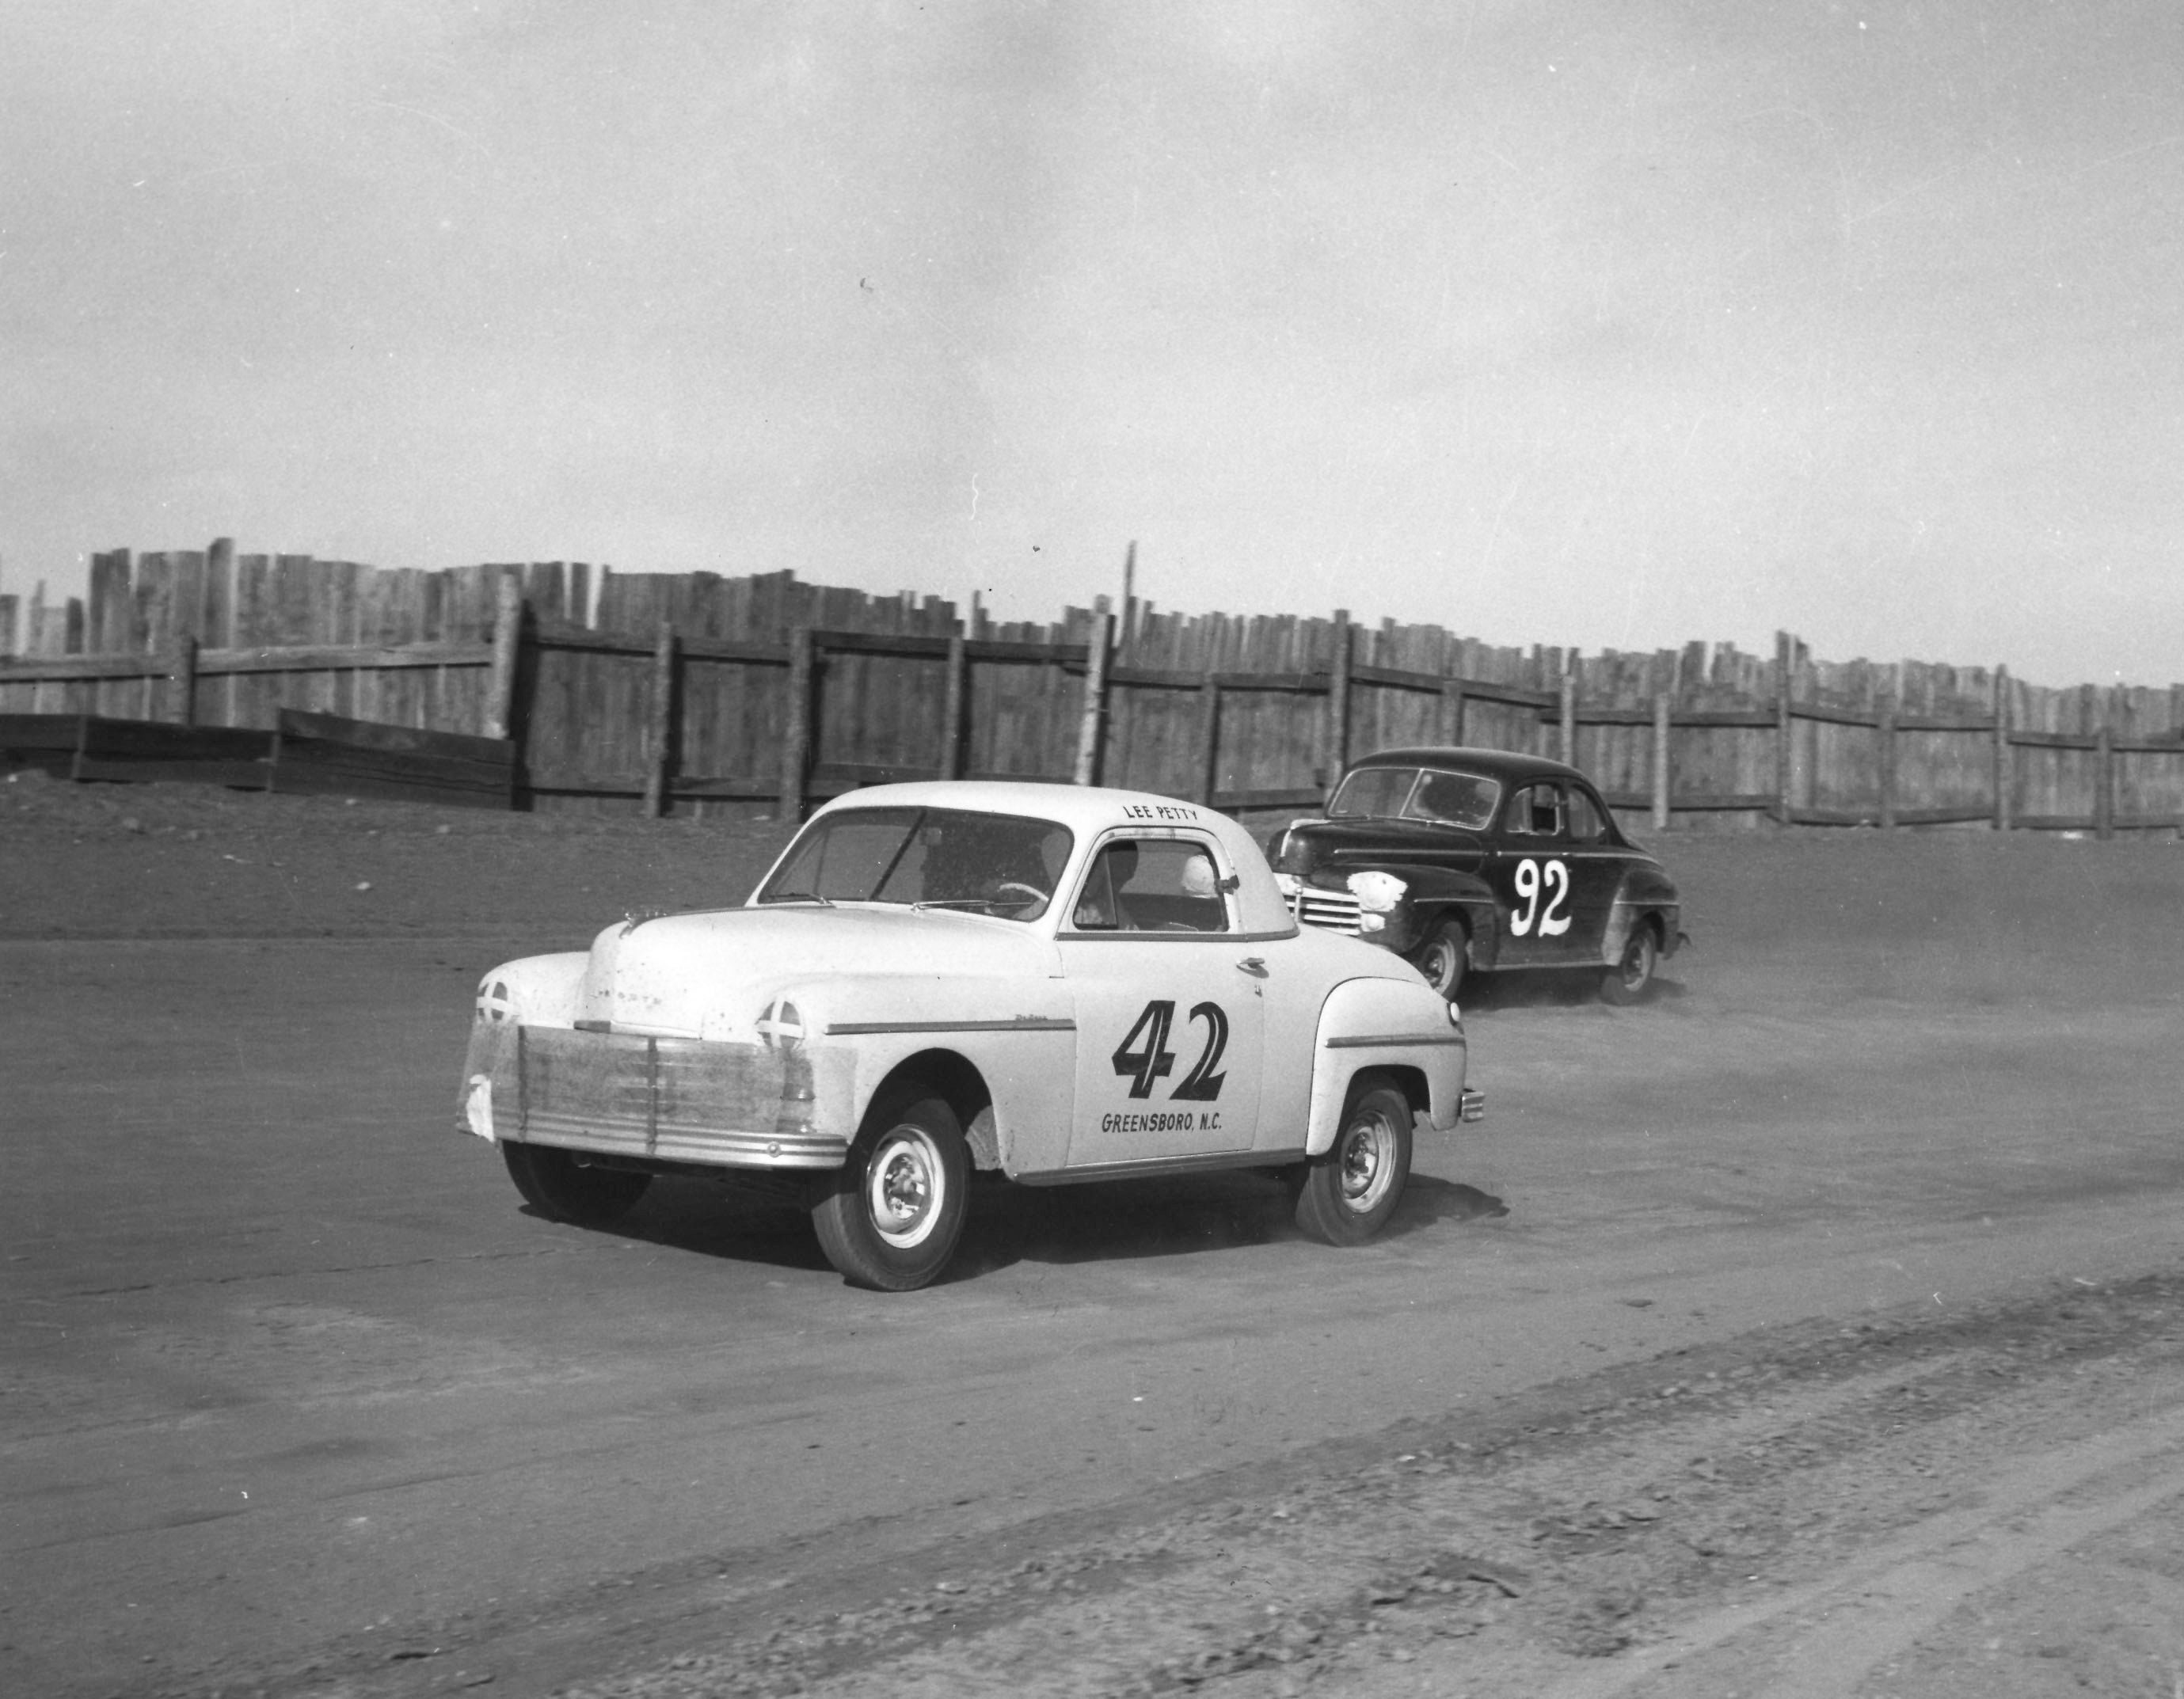 Early NASCAR Stars were Masters of the Dirt